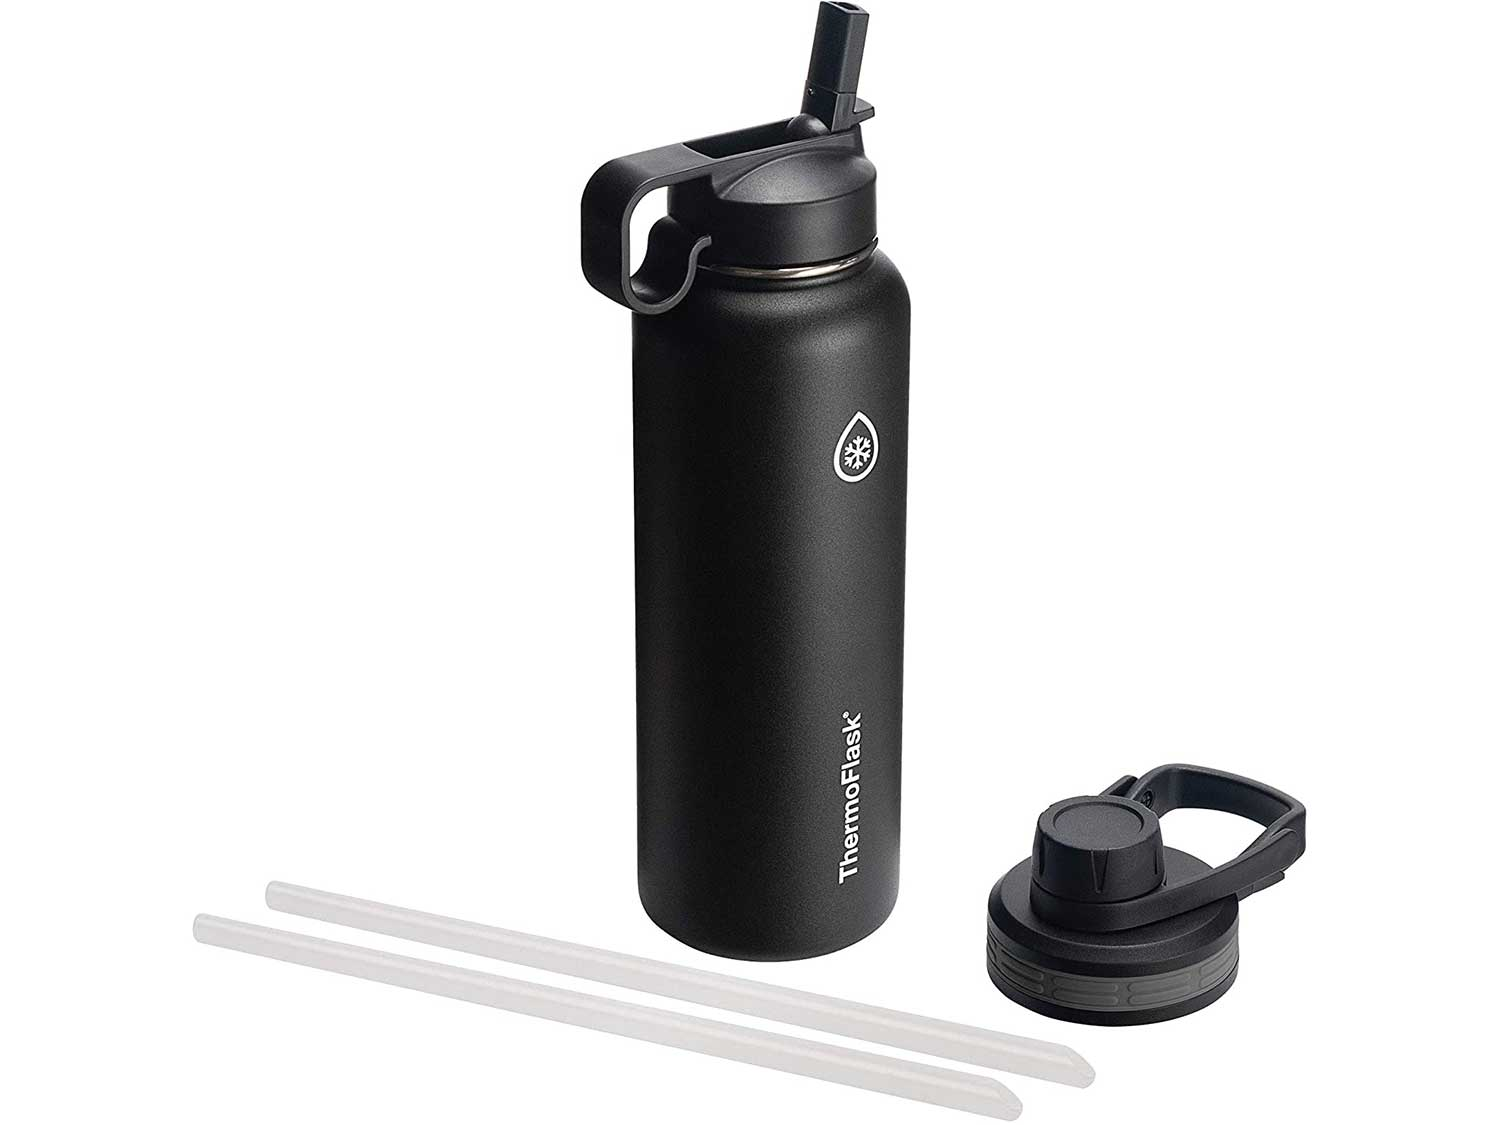 Thermoflask 50060 Double Stainless Steel Insulated Water Bottle, 40 oz, Black